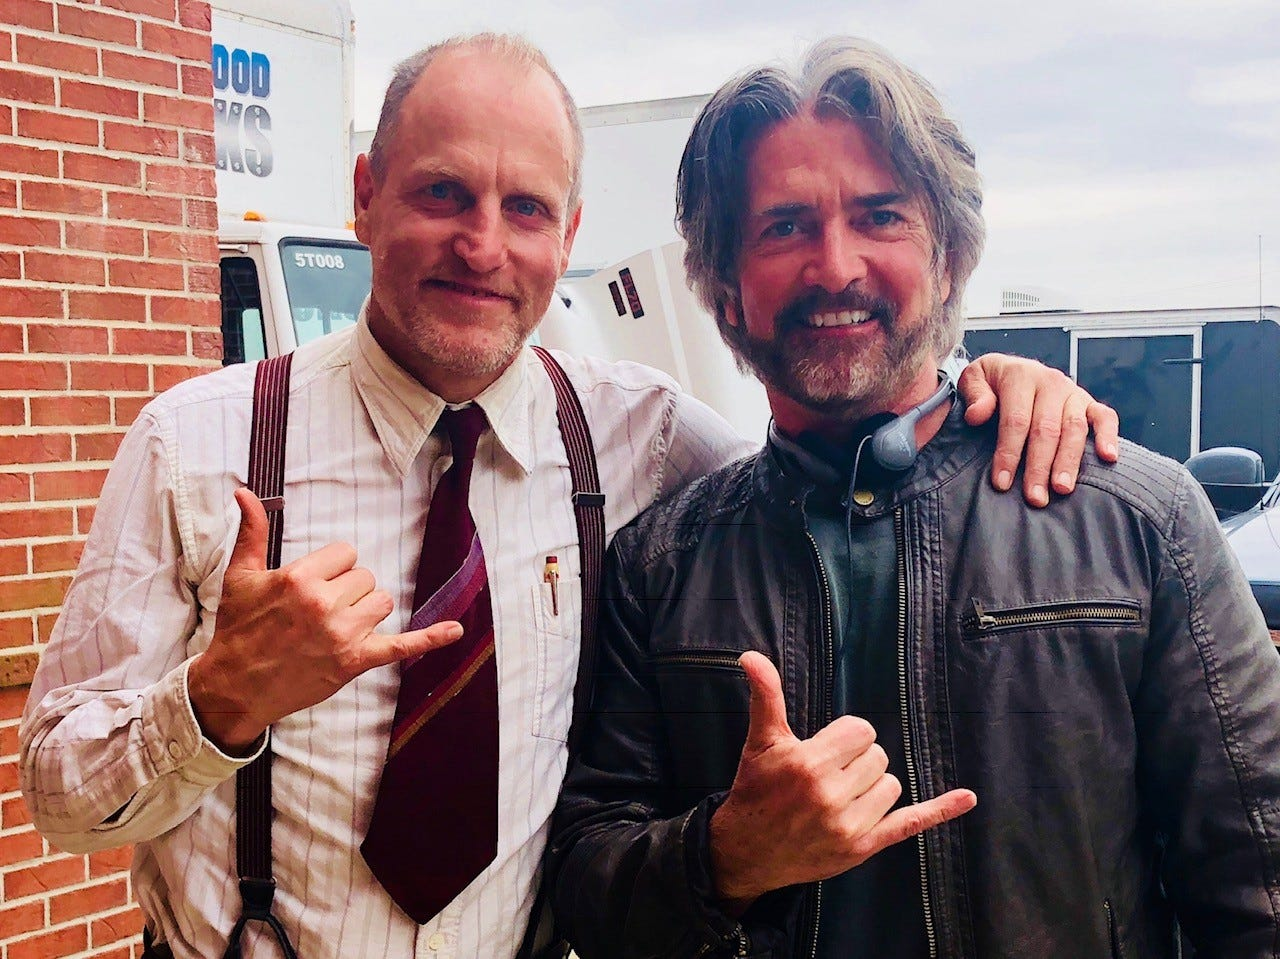 He was told it was 'career suicide' to move to VT. Woody Harrelson and Kevin Costner star in his new Netflix film.